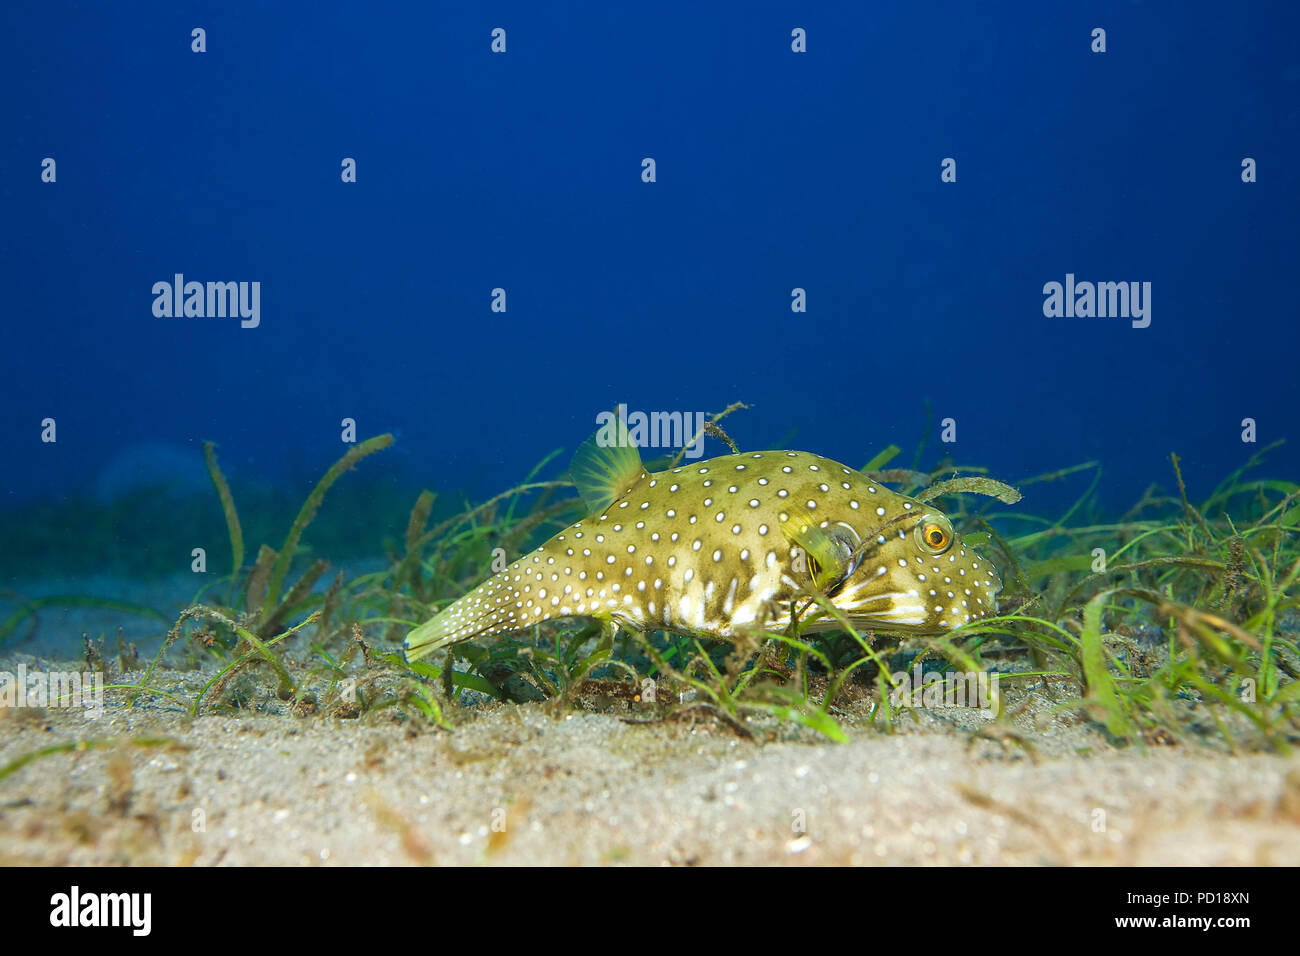 White-spotted Puffer (Arothron hispidus) at seagrass, Dumaguete, Negros, Philippines - Stock Image